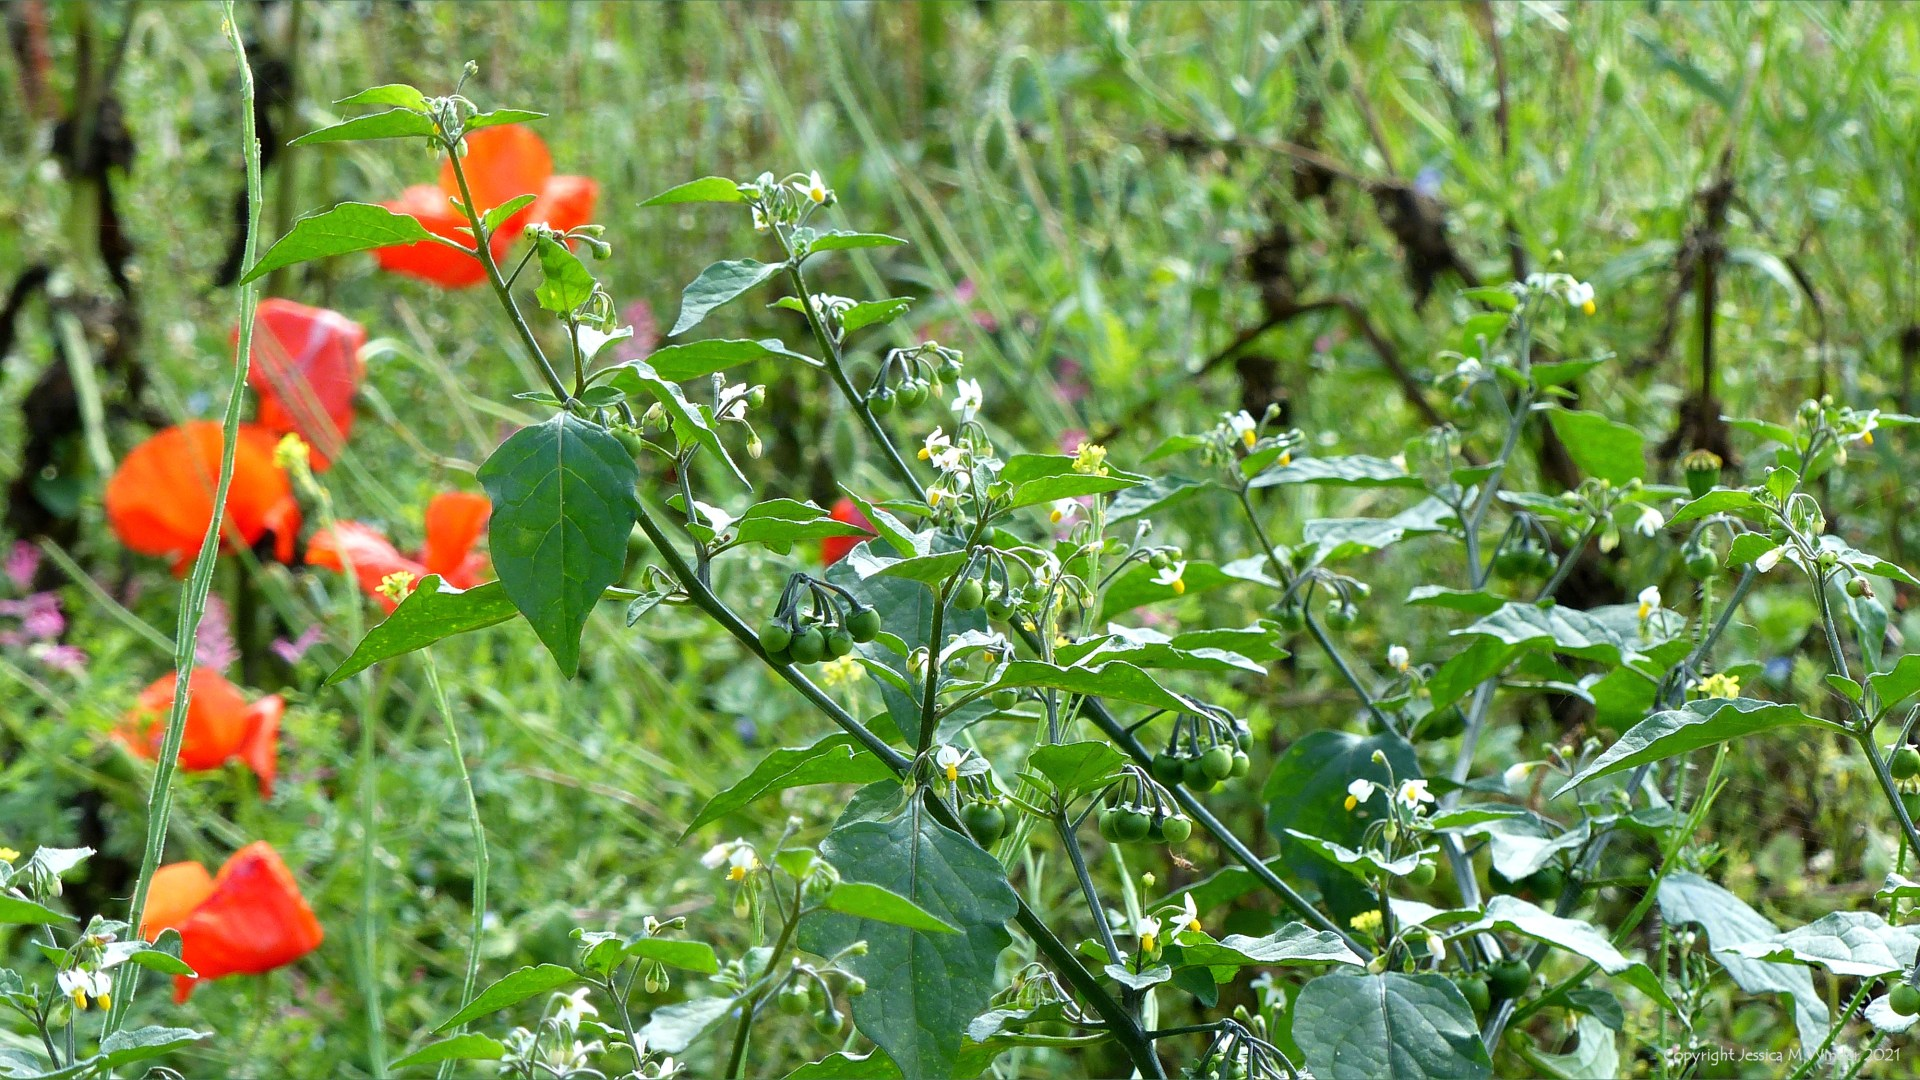 Black Nightshade (Solanum nigrum) with other arable weeds in a field margin